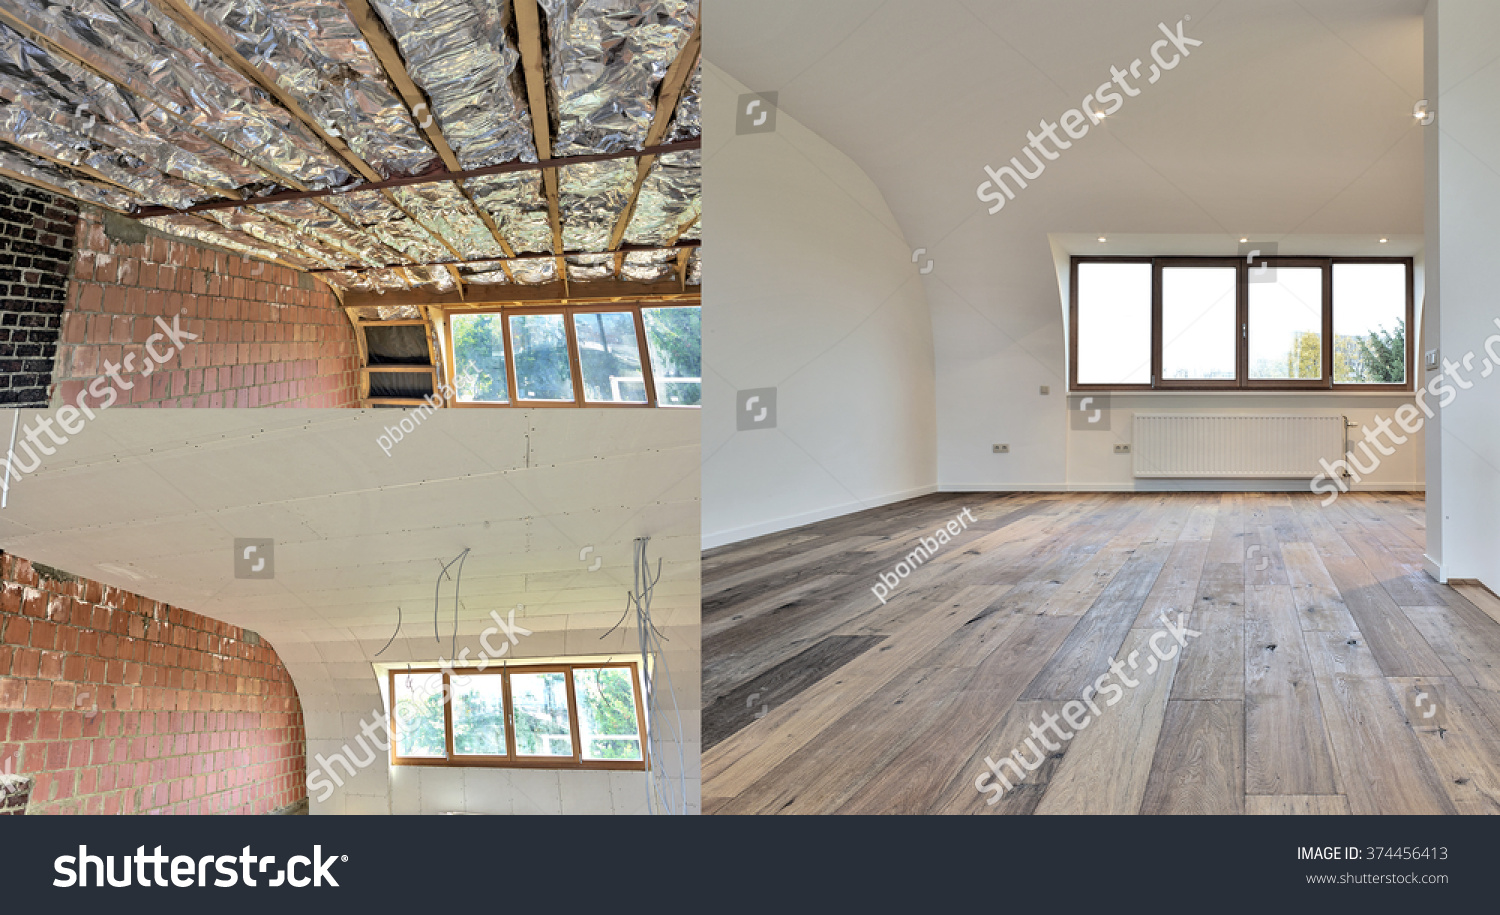 stock-photo-construction-of-the-wooden-frame-of-a-roof-fiberglass-insulation-installed-in-the-sloping-ceiling-374456413